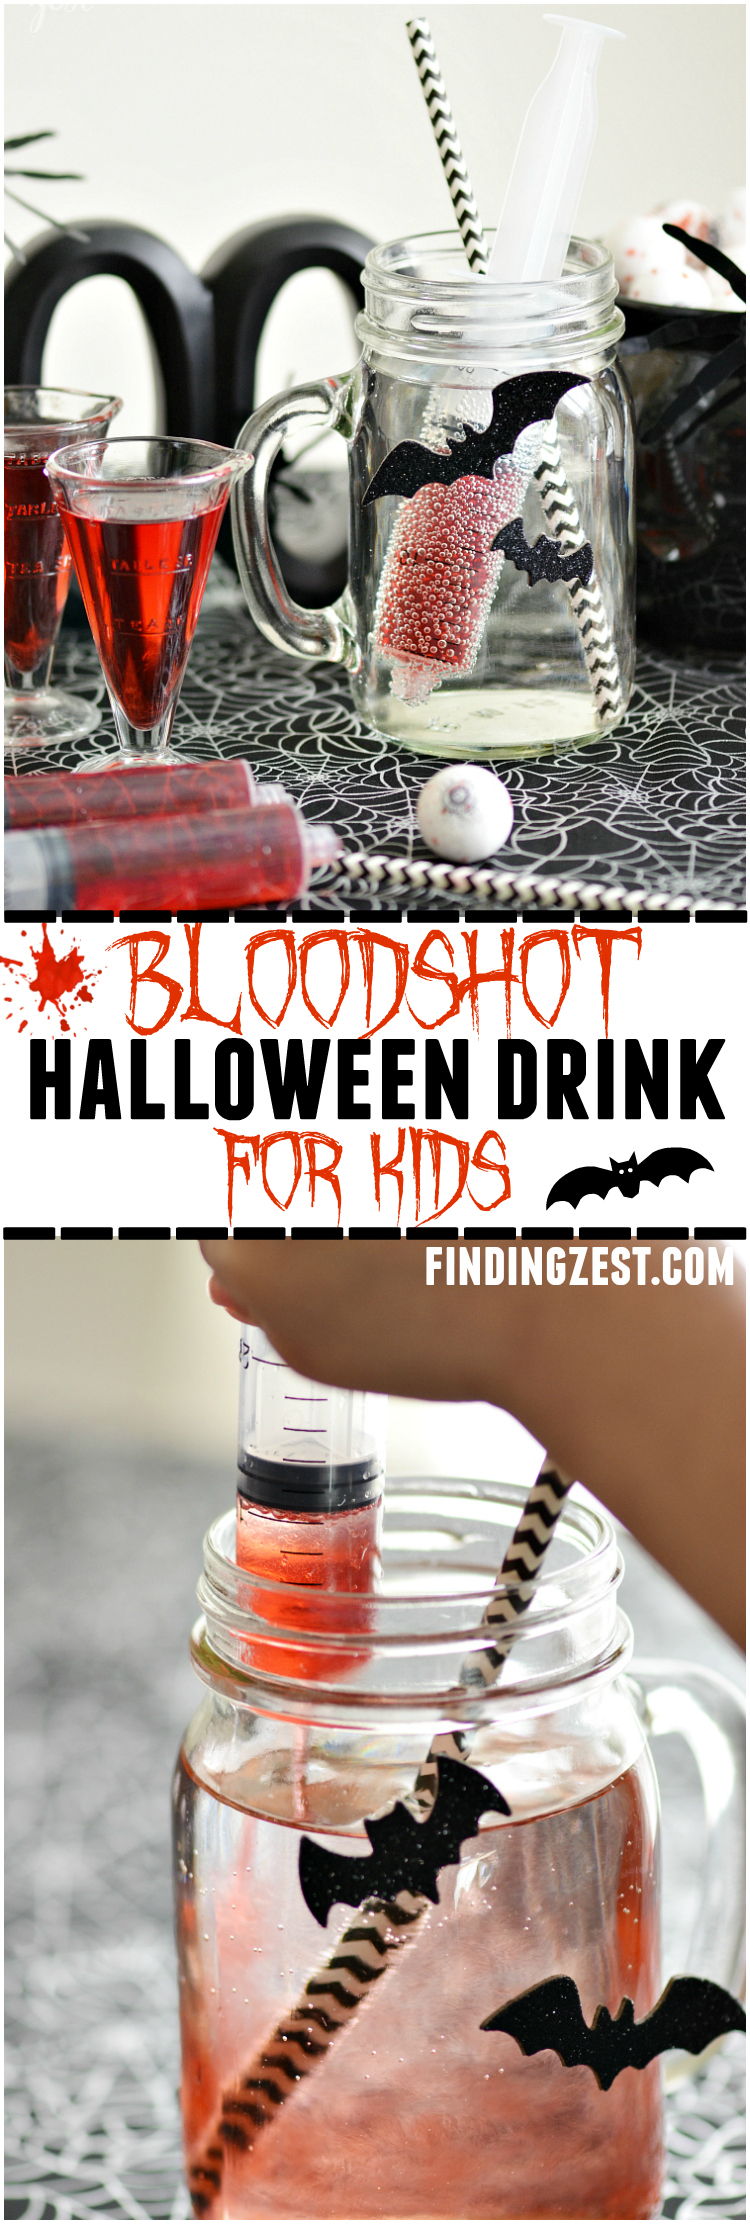 This Bloodshot Halloween Drink for Kids is a fun and healthy option with no added sugar or artificial dyes! Perfect for entertaining or just because!